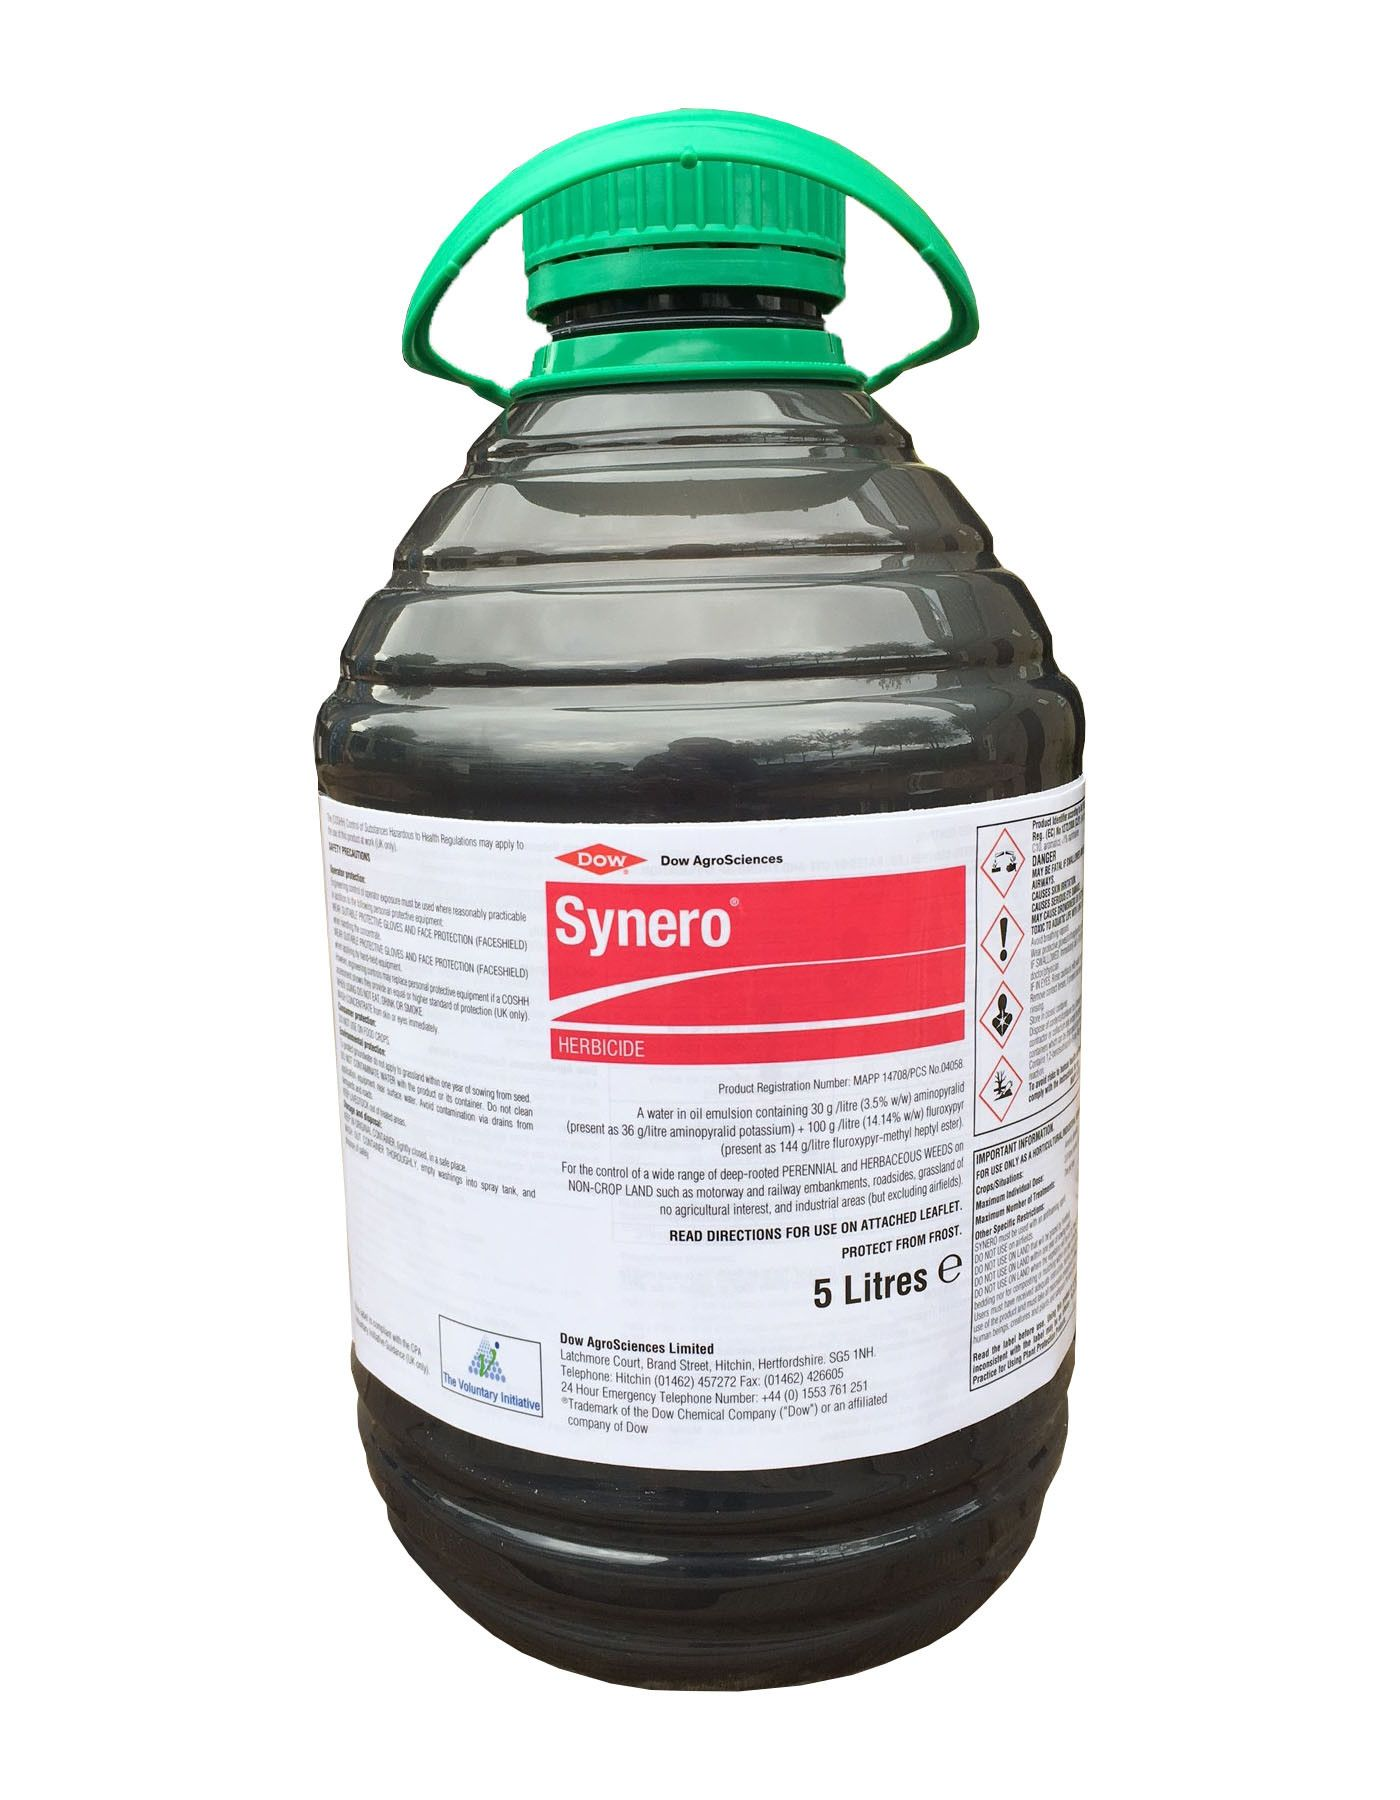 Synero Cost effective Control For Invasive Weeds 3L